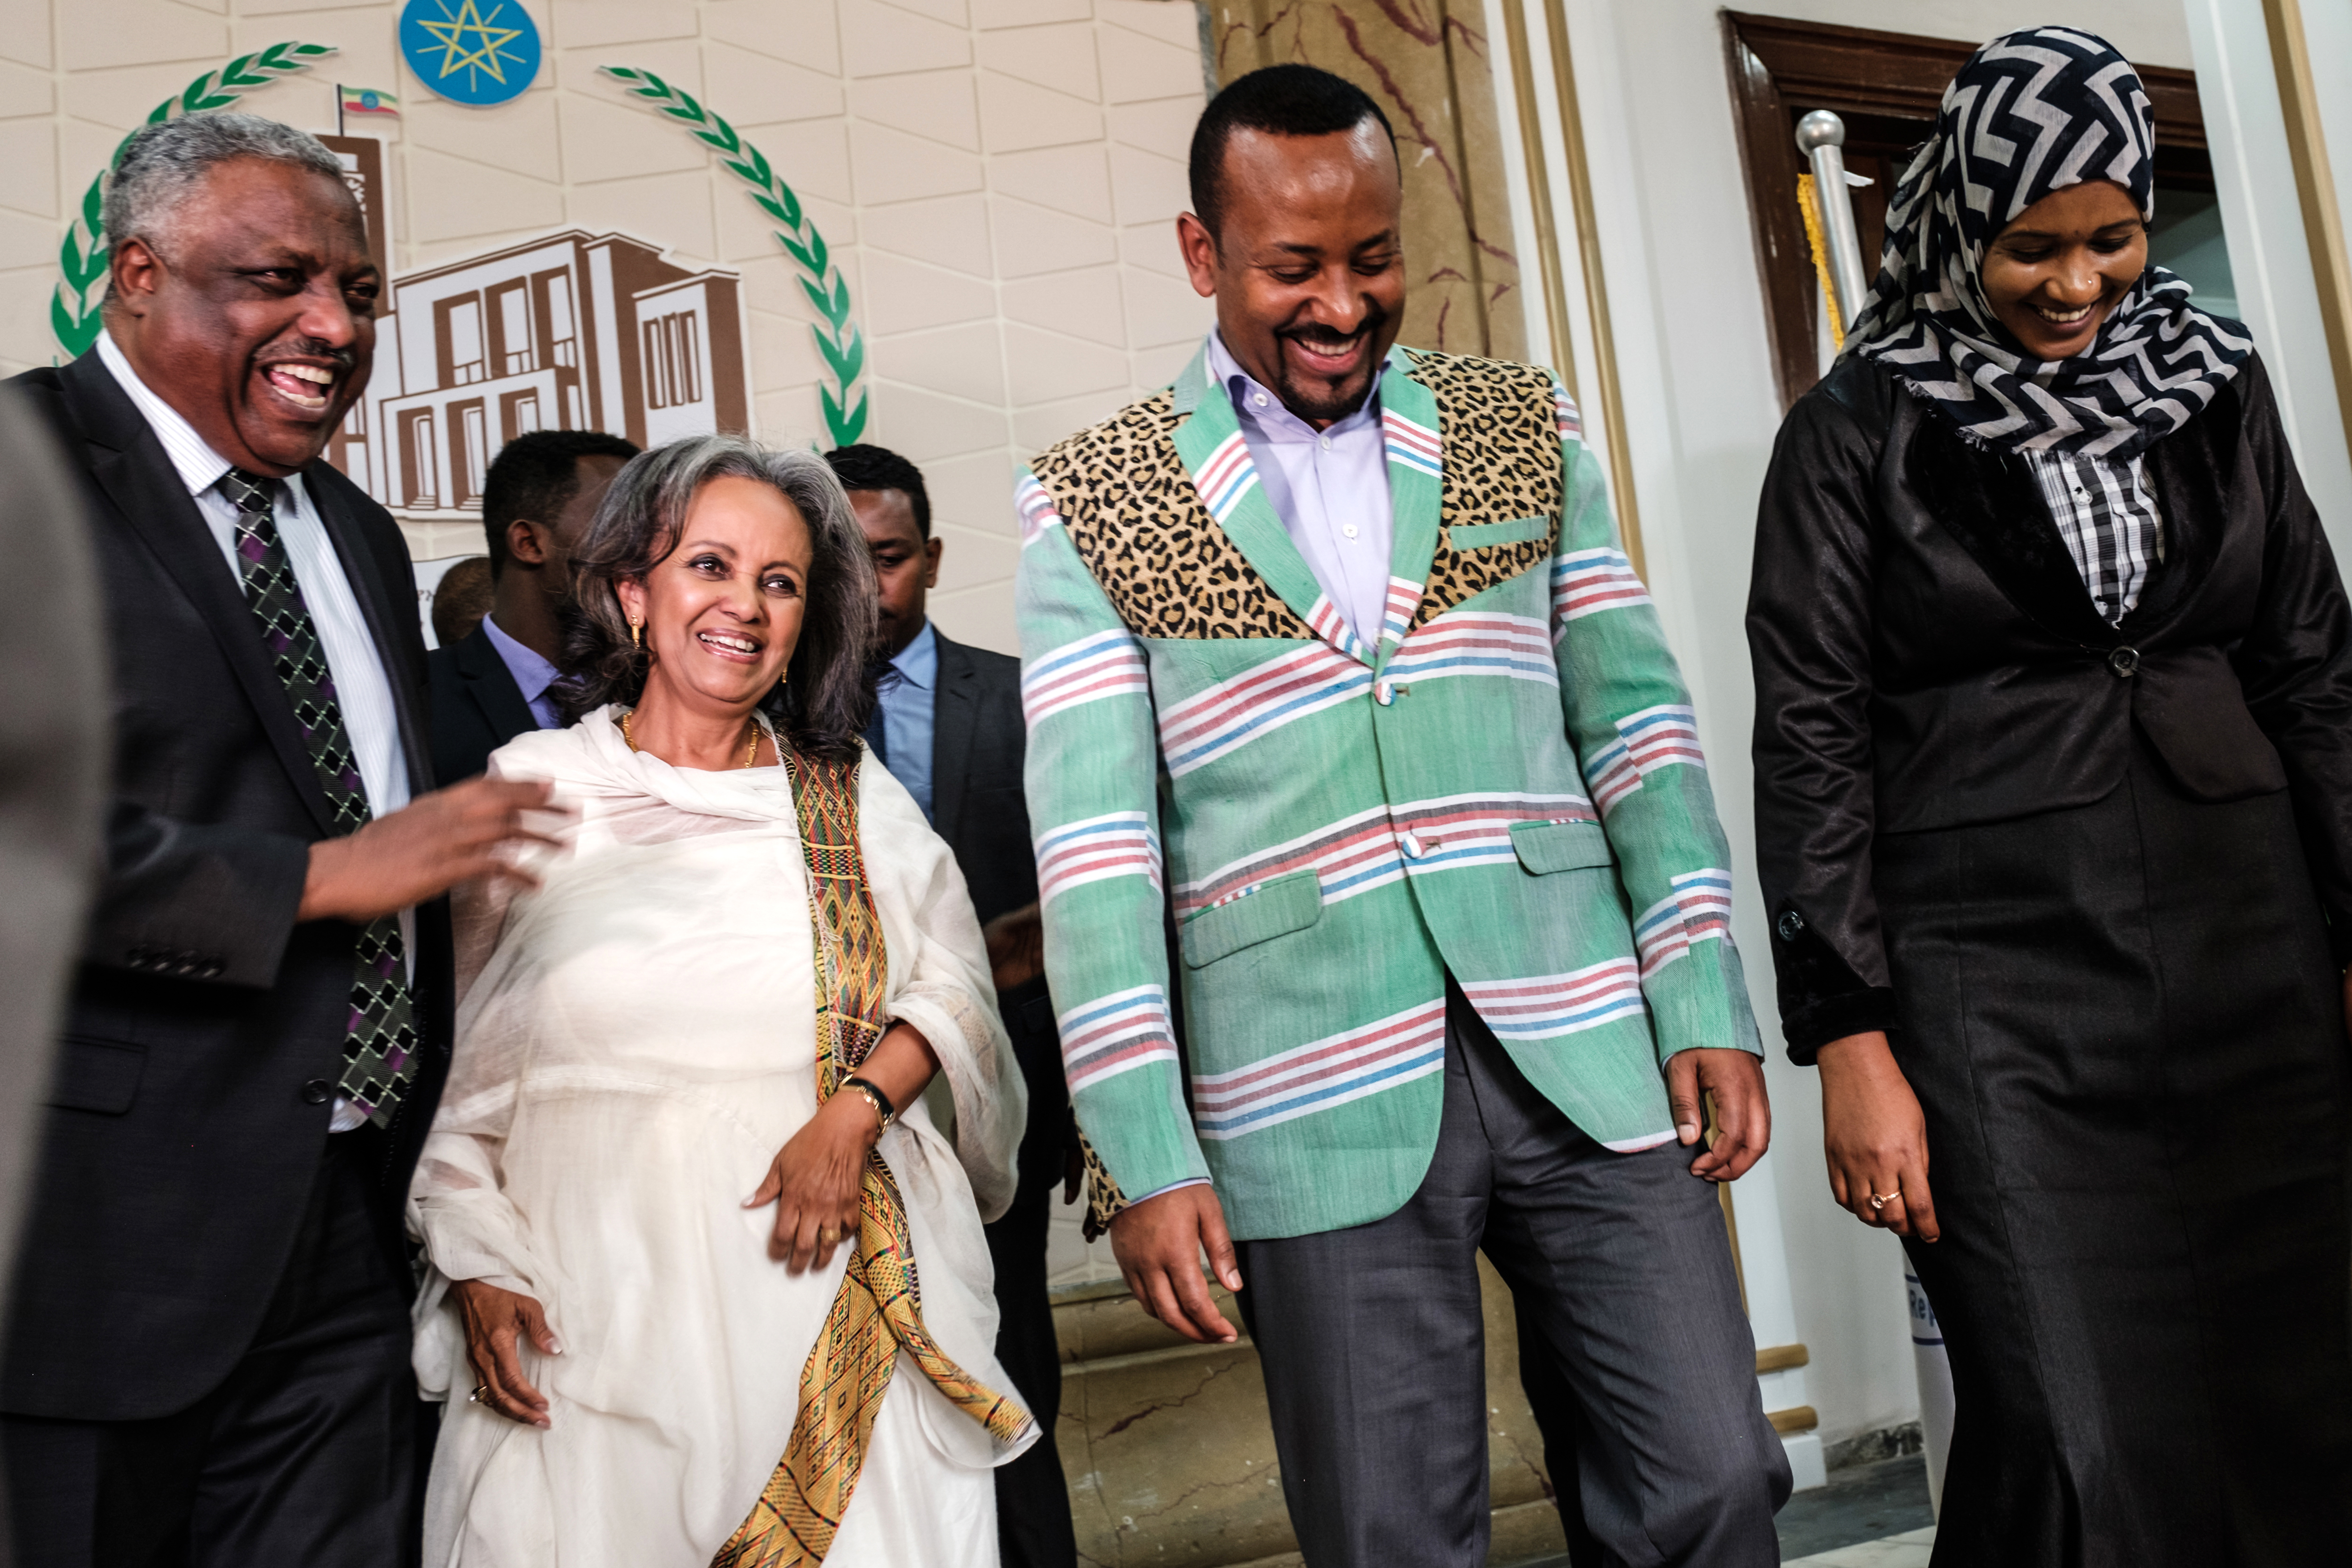 Sahle-Work Zewde (2-L) walks with Prime Minister Abiy Ahmed (2-R) after being elected Ethiopia's first female president, at the Parliament in Addis Ababa, Oct. 25, 2018.